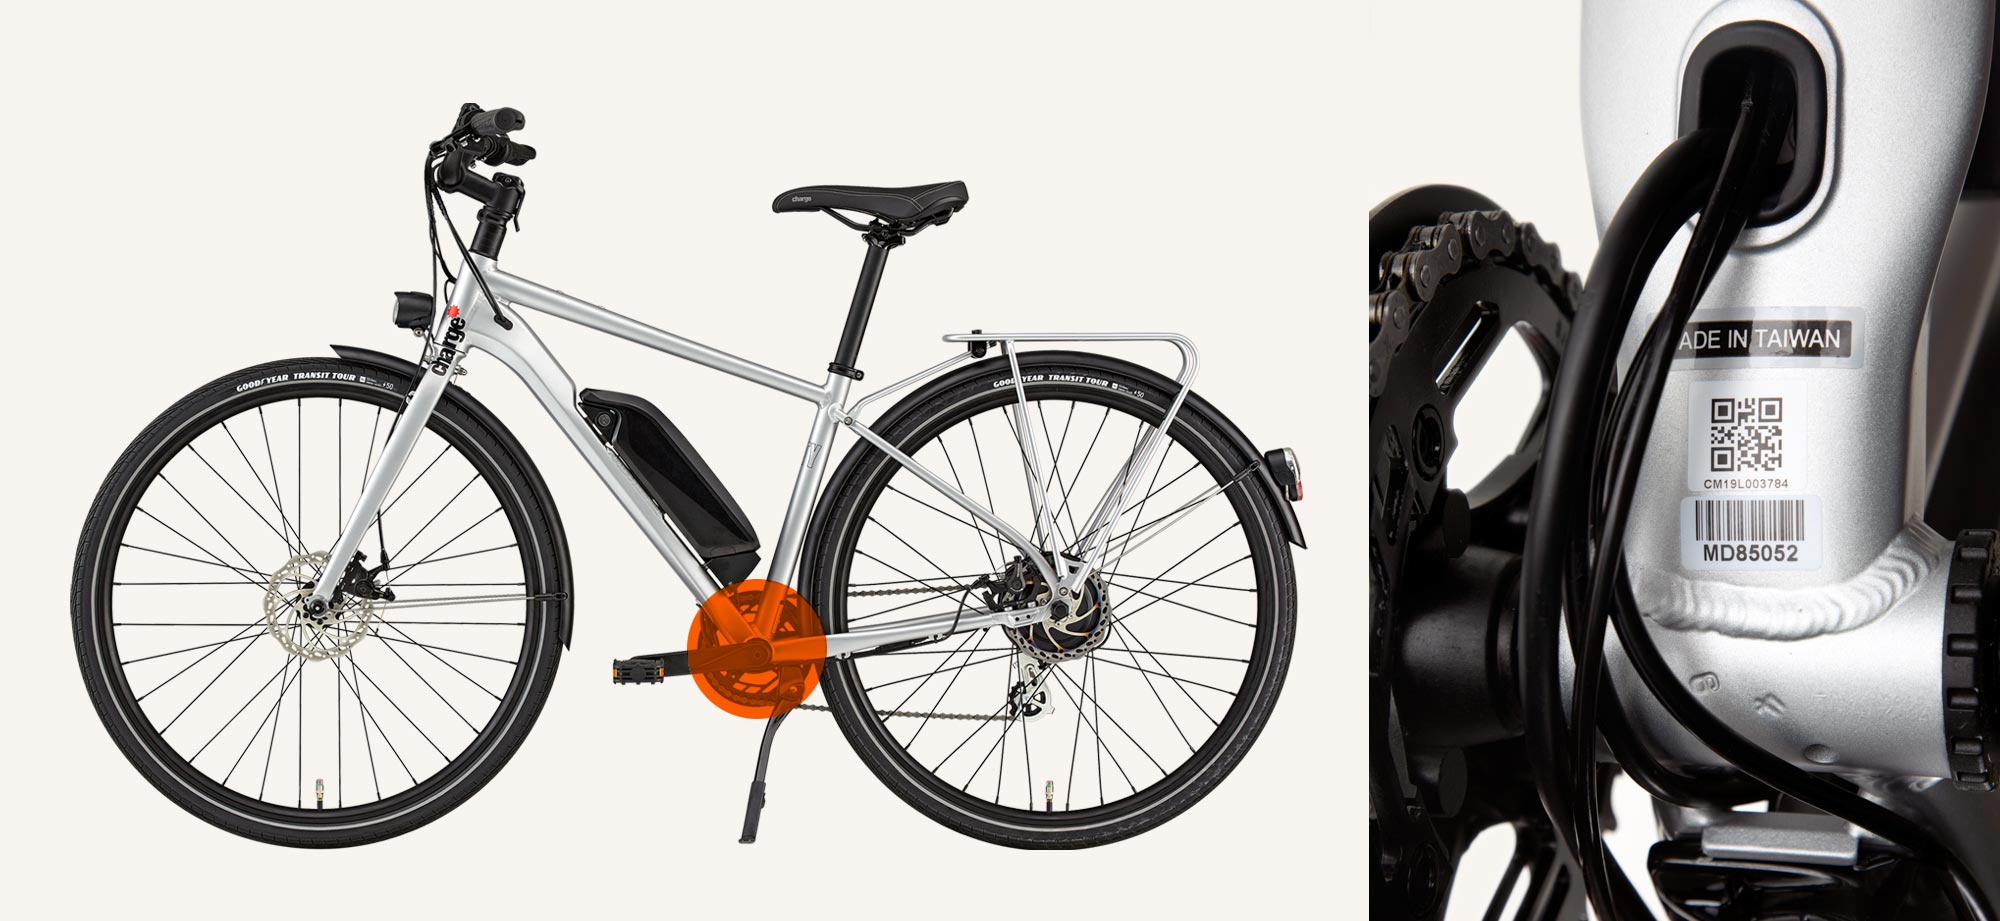 Find Charge bike serial number for registration